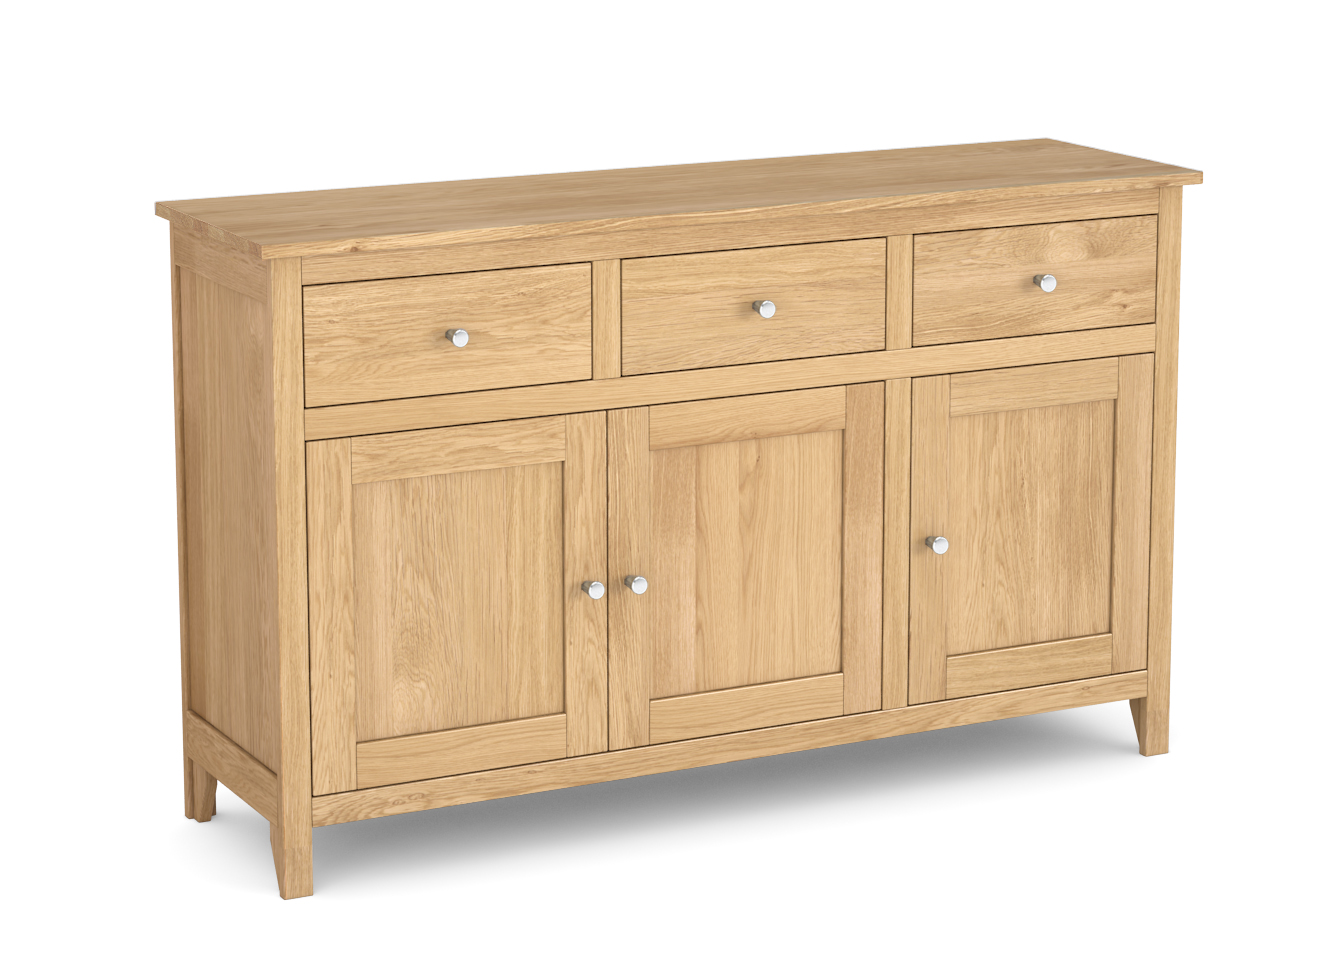 Le Meilleur Nimbus 3 Drawer 3 Door Sideboard Choice Furniture Ce Mois Ci